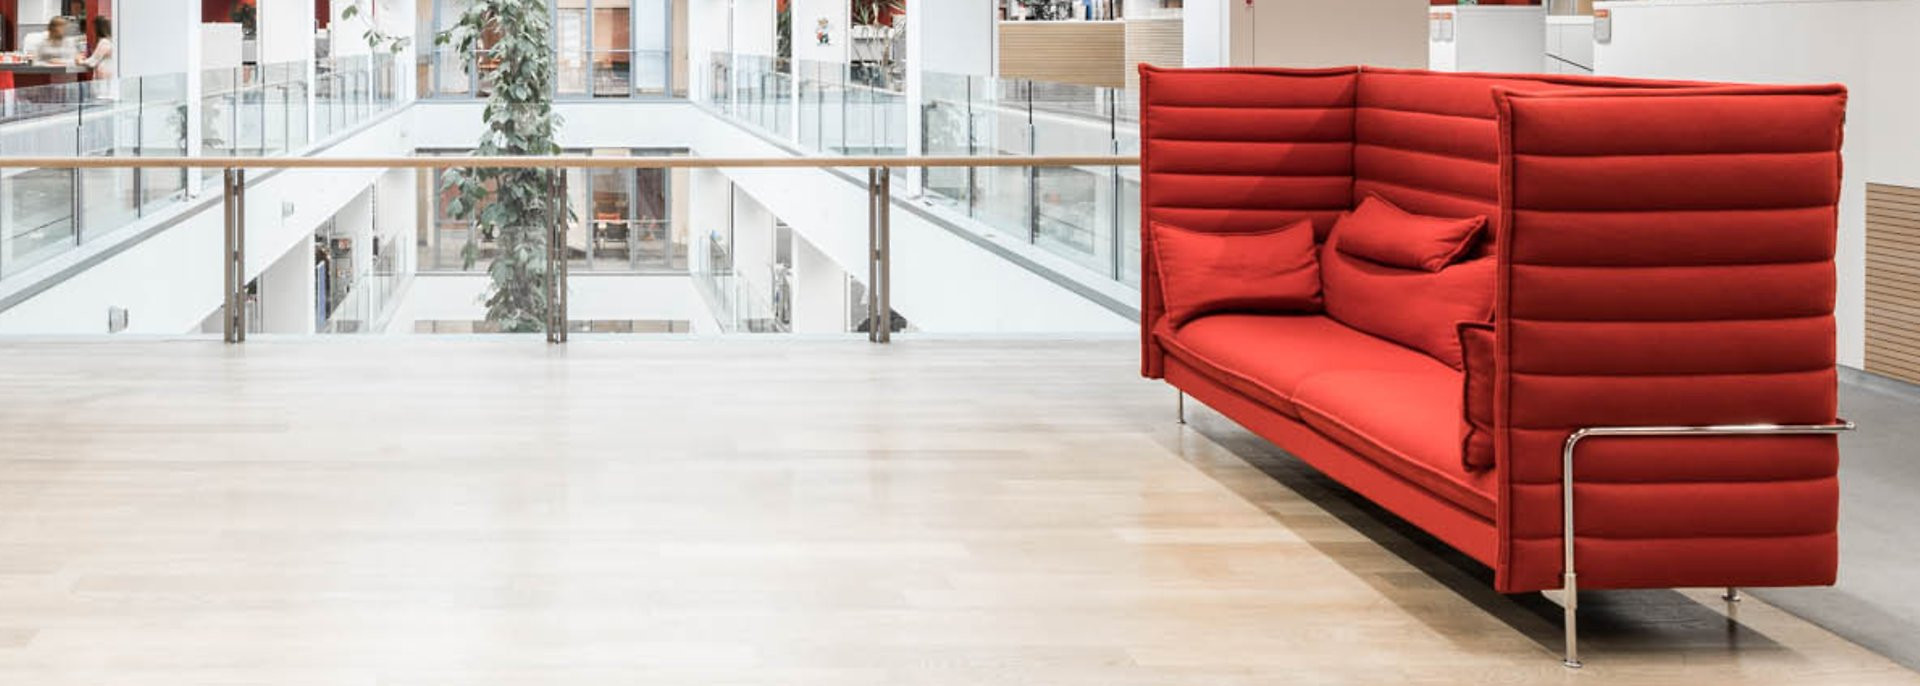 universal hardwood flooring toronto of home pertaining to image of lounge area with red sofas and open space in adhesive technologies building at henkel